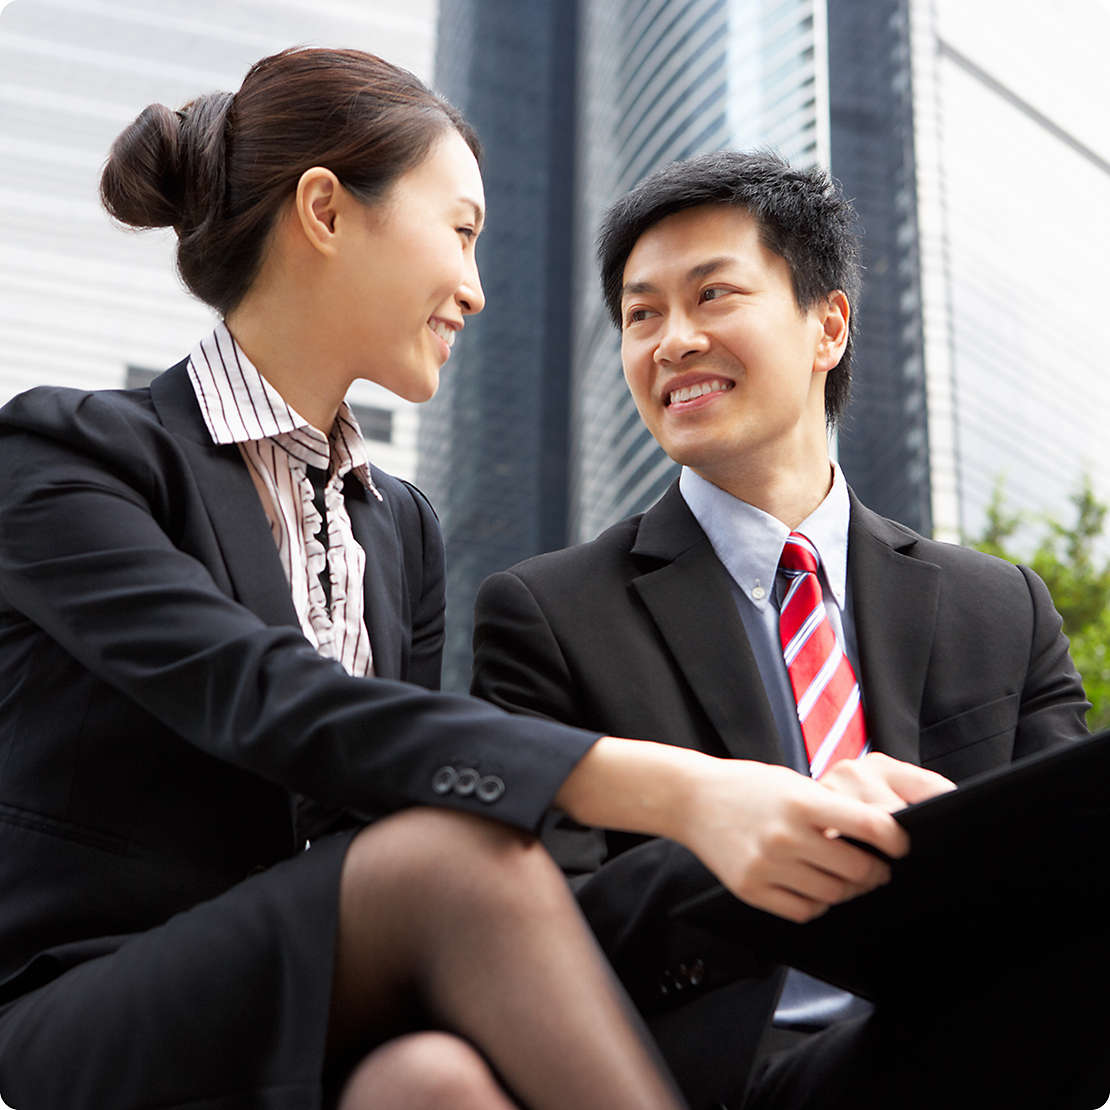 Two employees smiling at each other